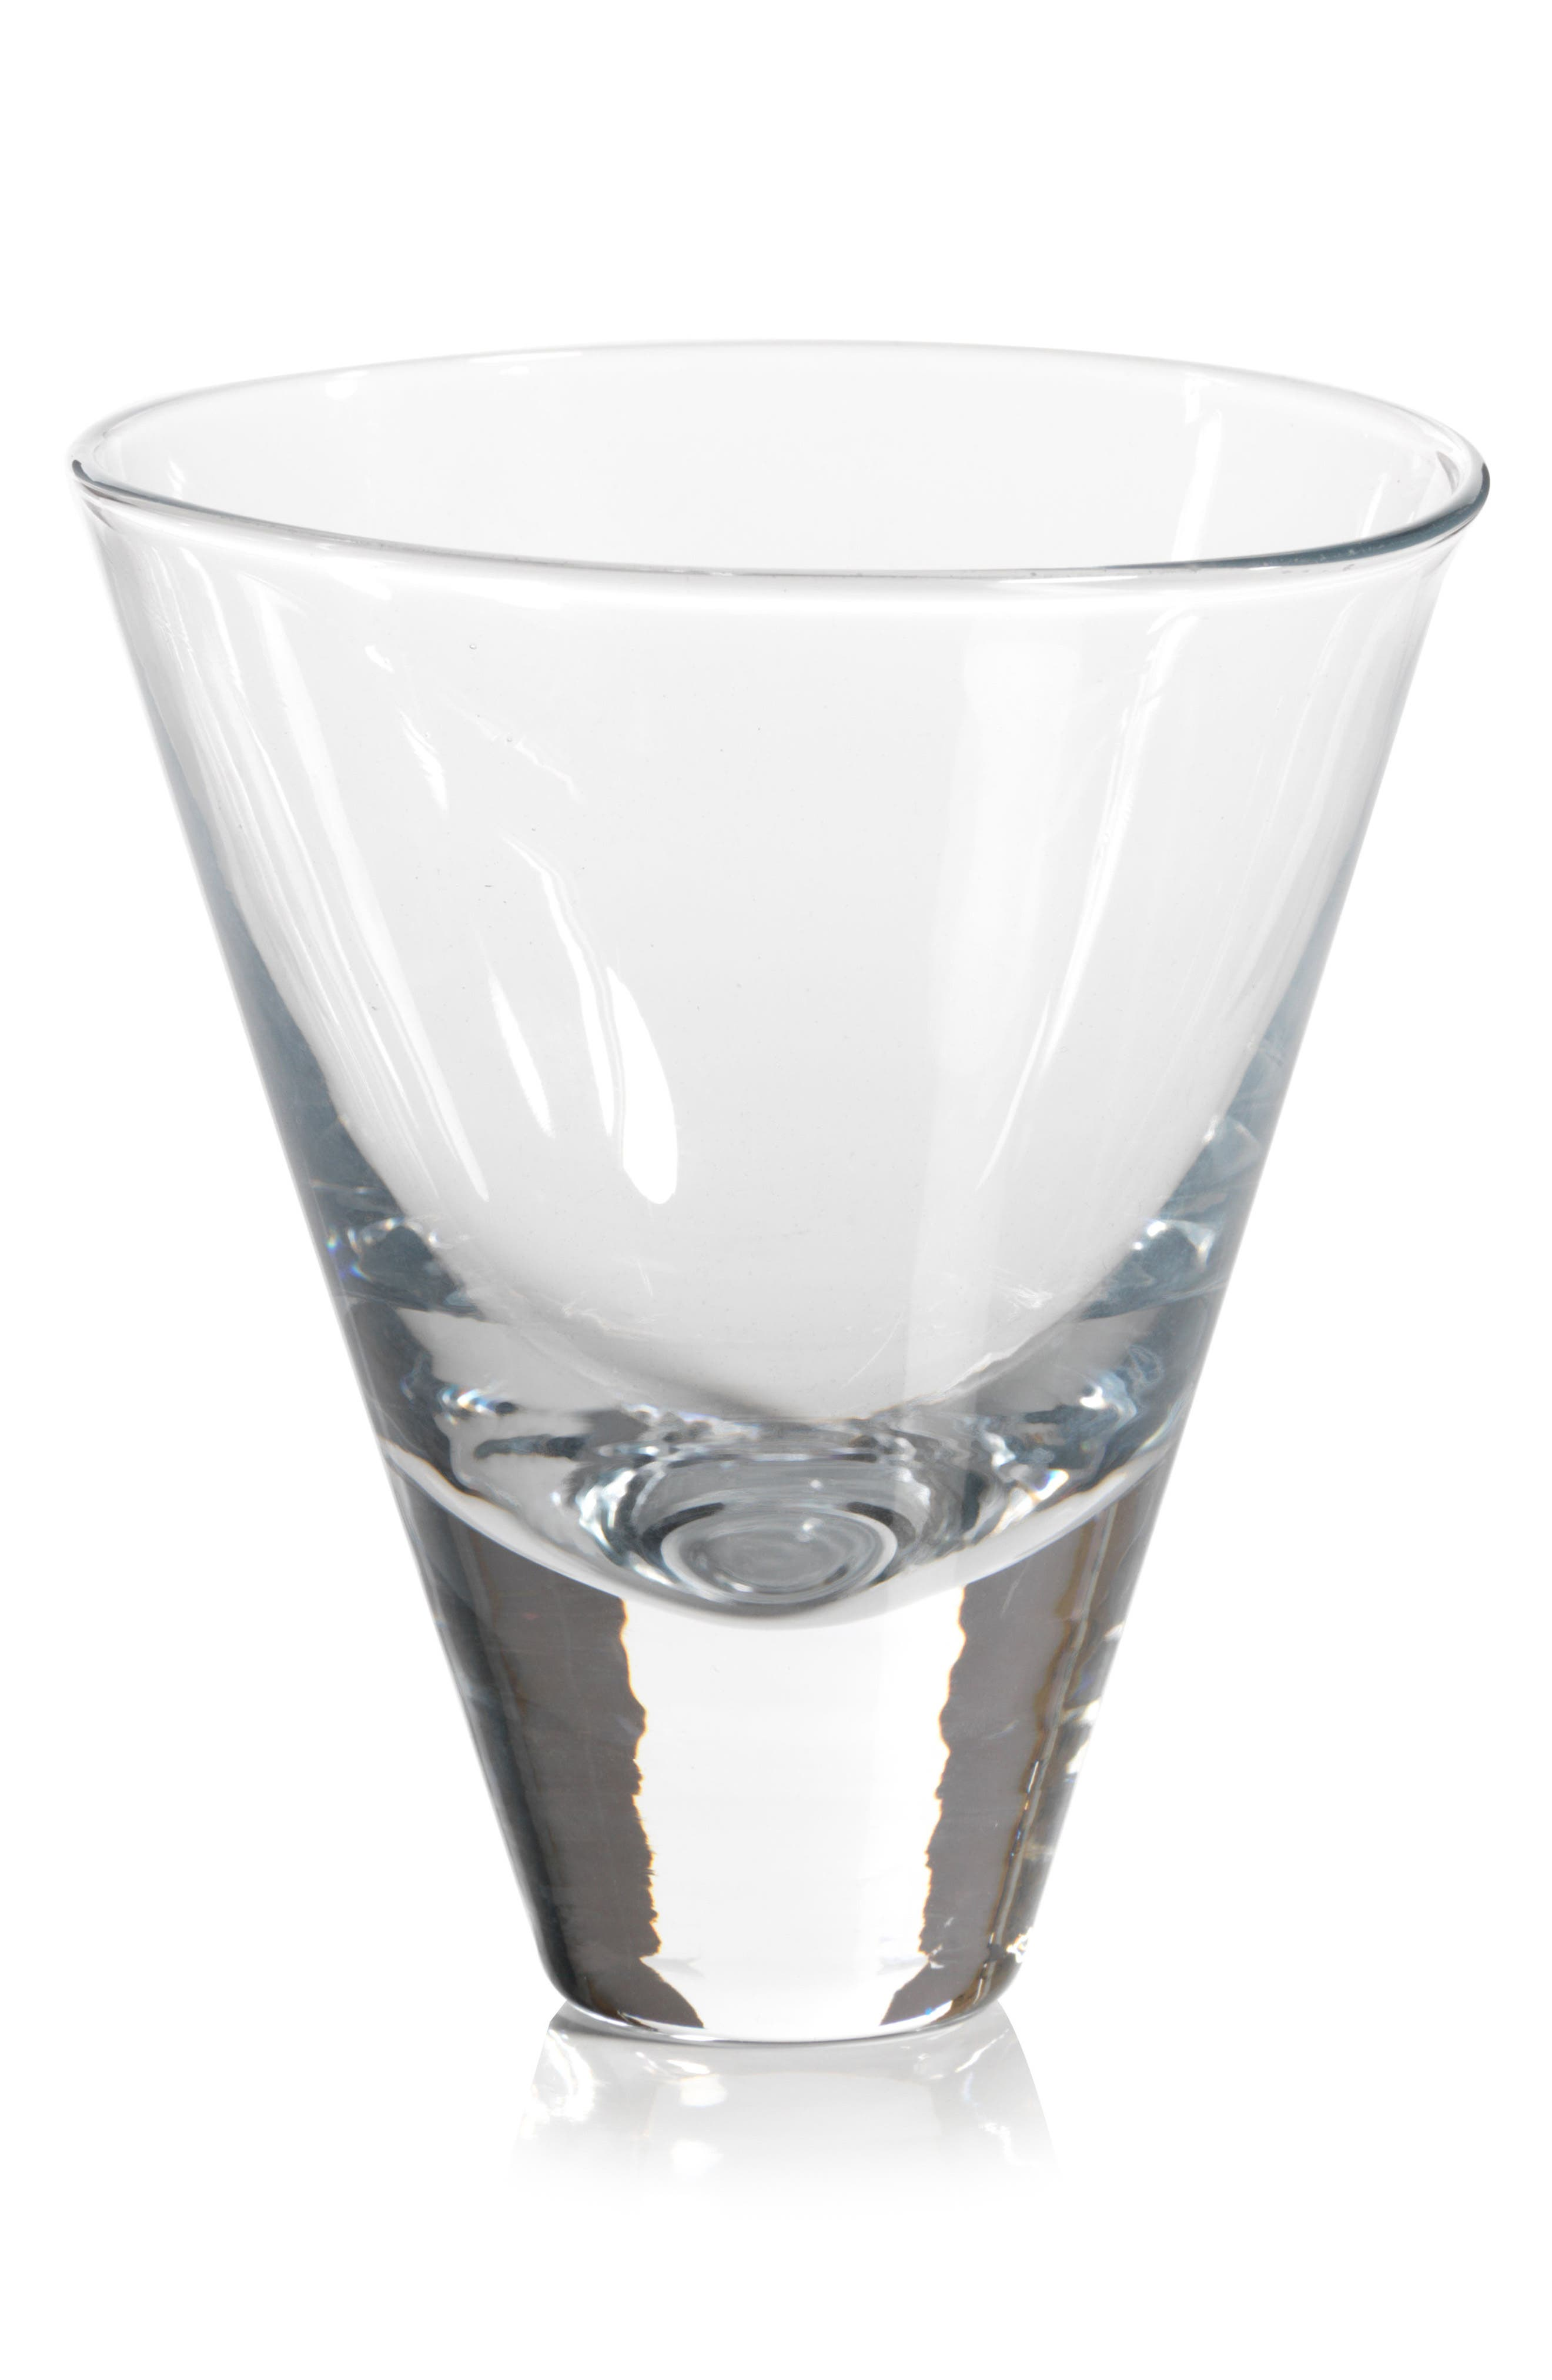 Main Image - Zodax Anatole Set of 4 Cocktail Glasses